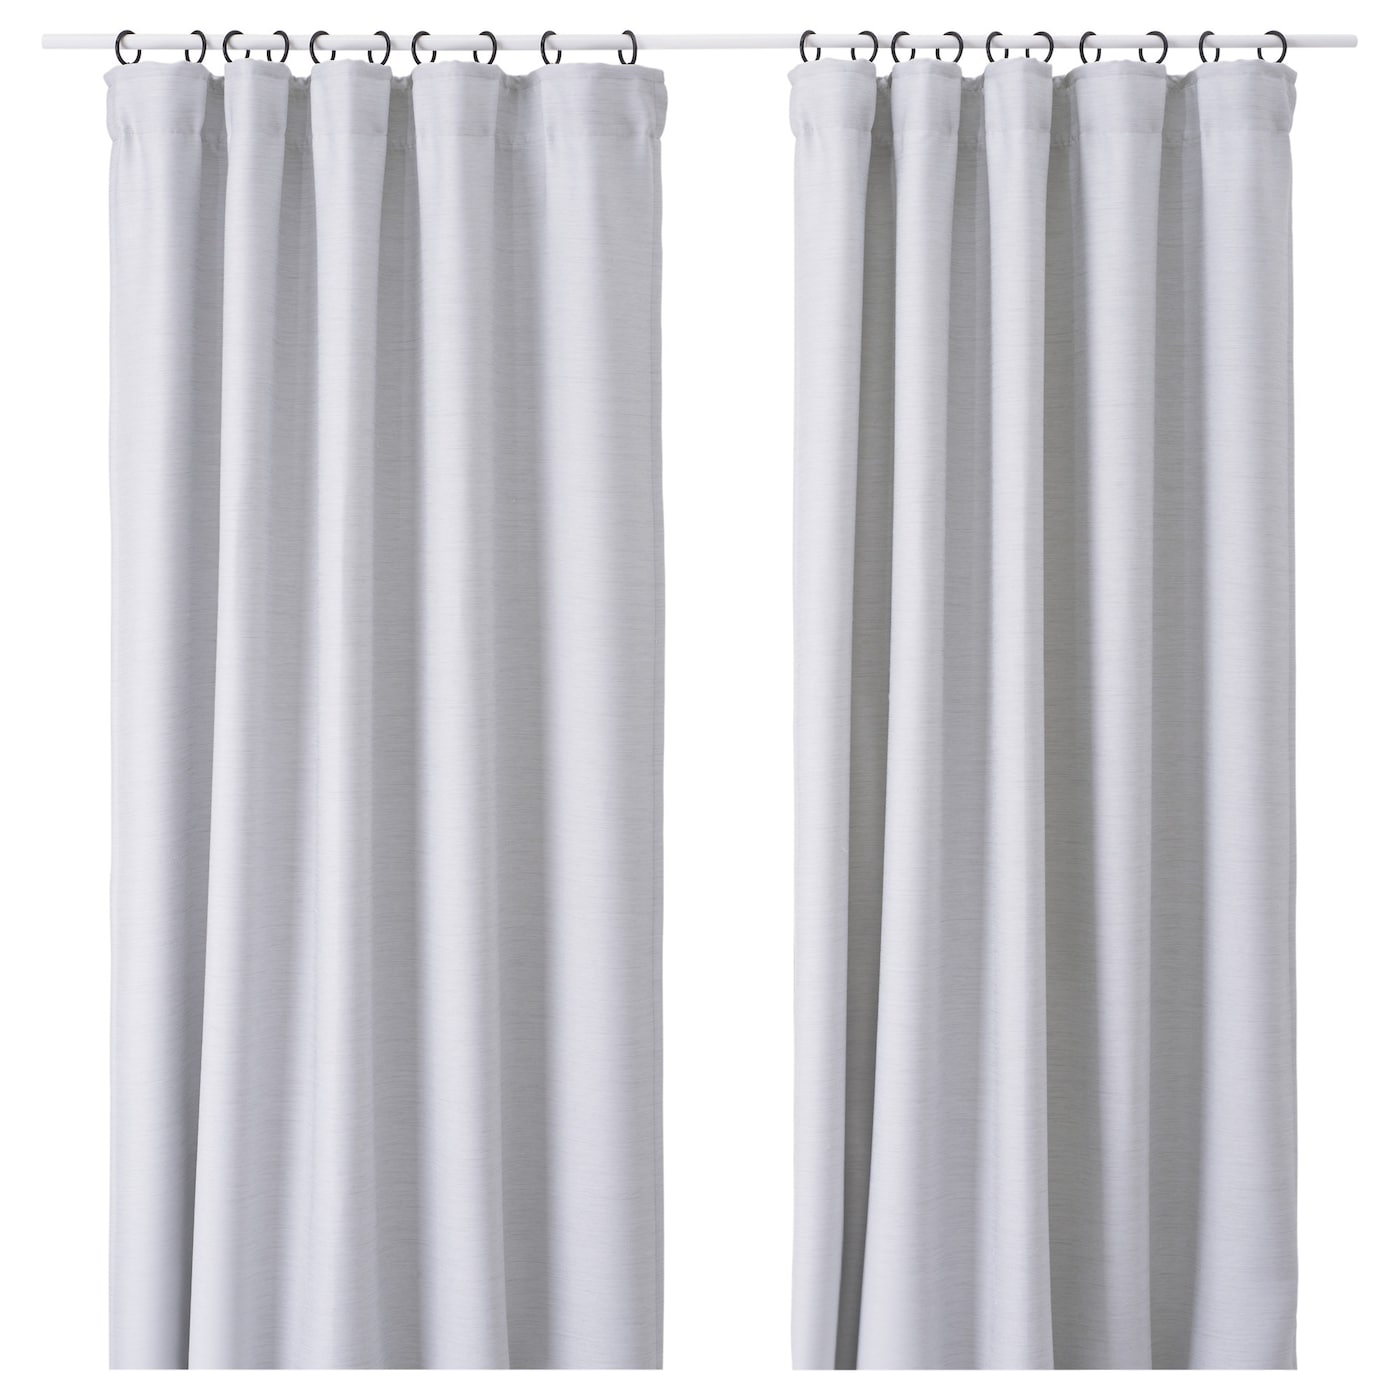 montana curtain magnify off stripe to hover curtains grey eyelet